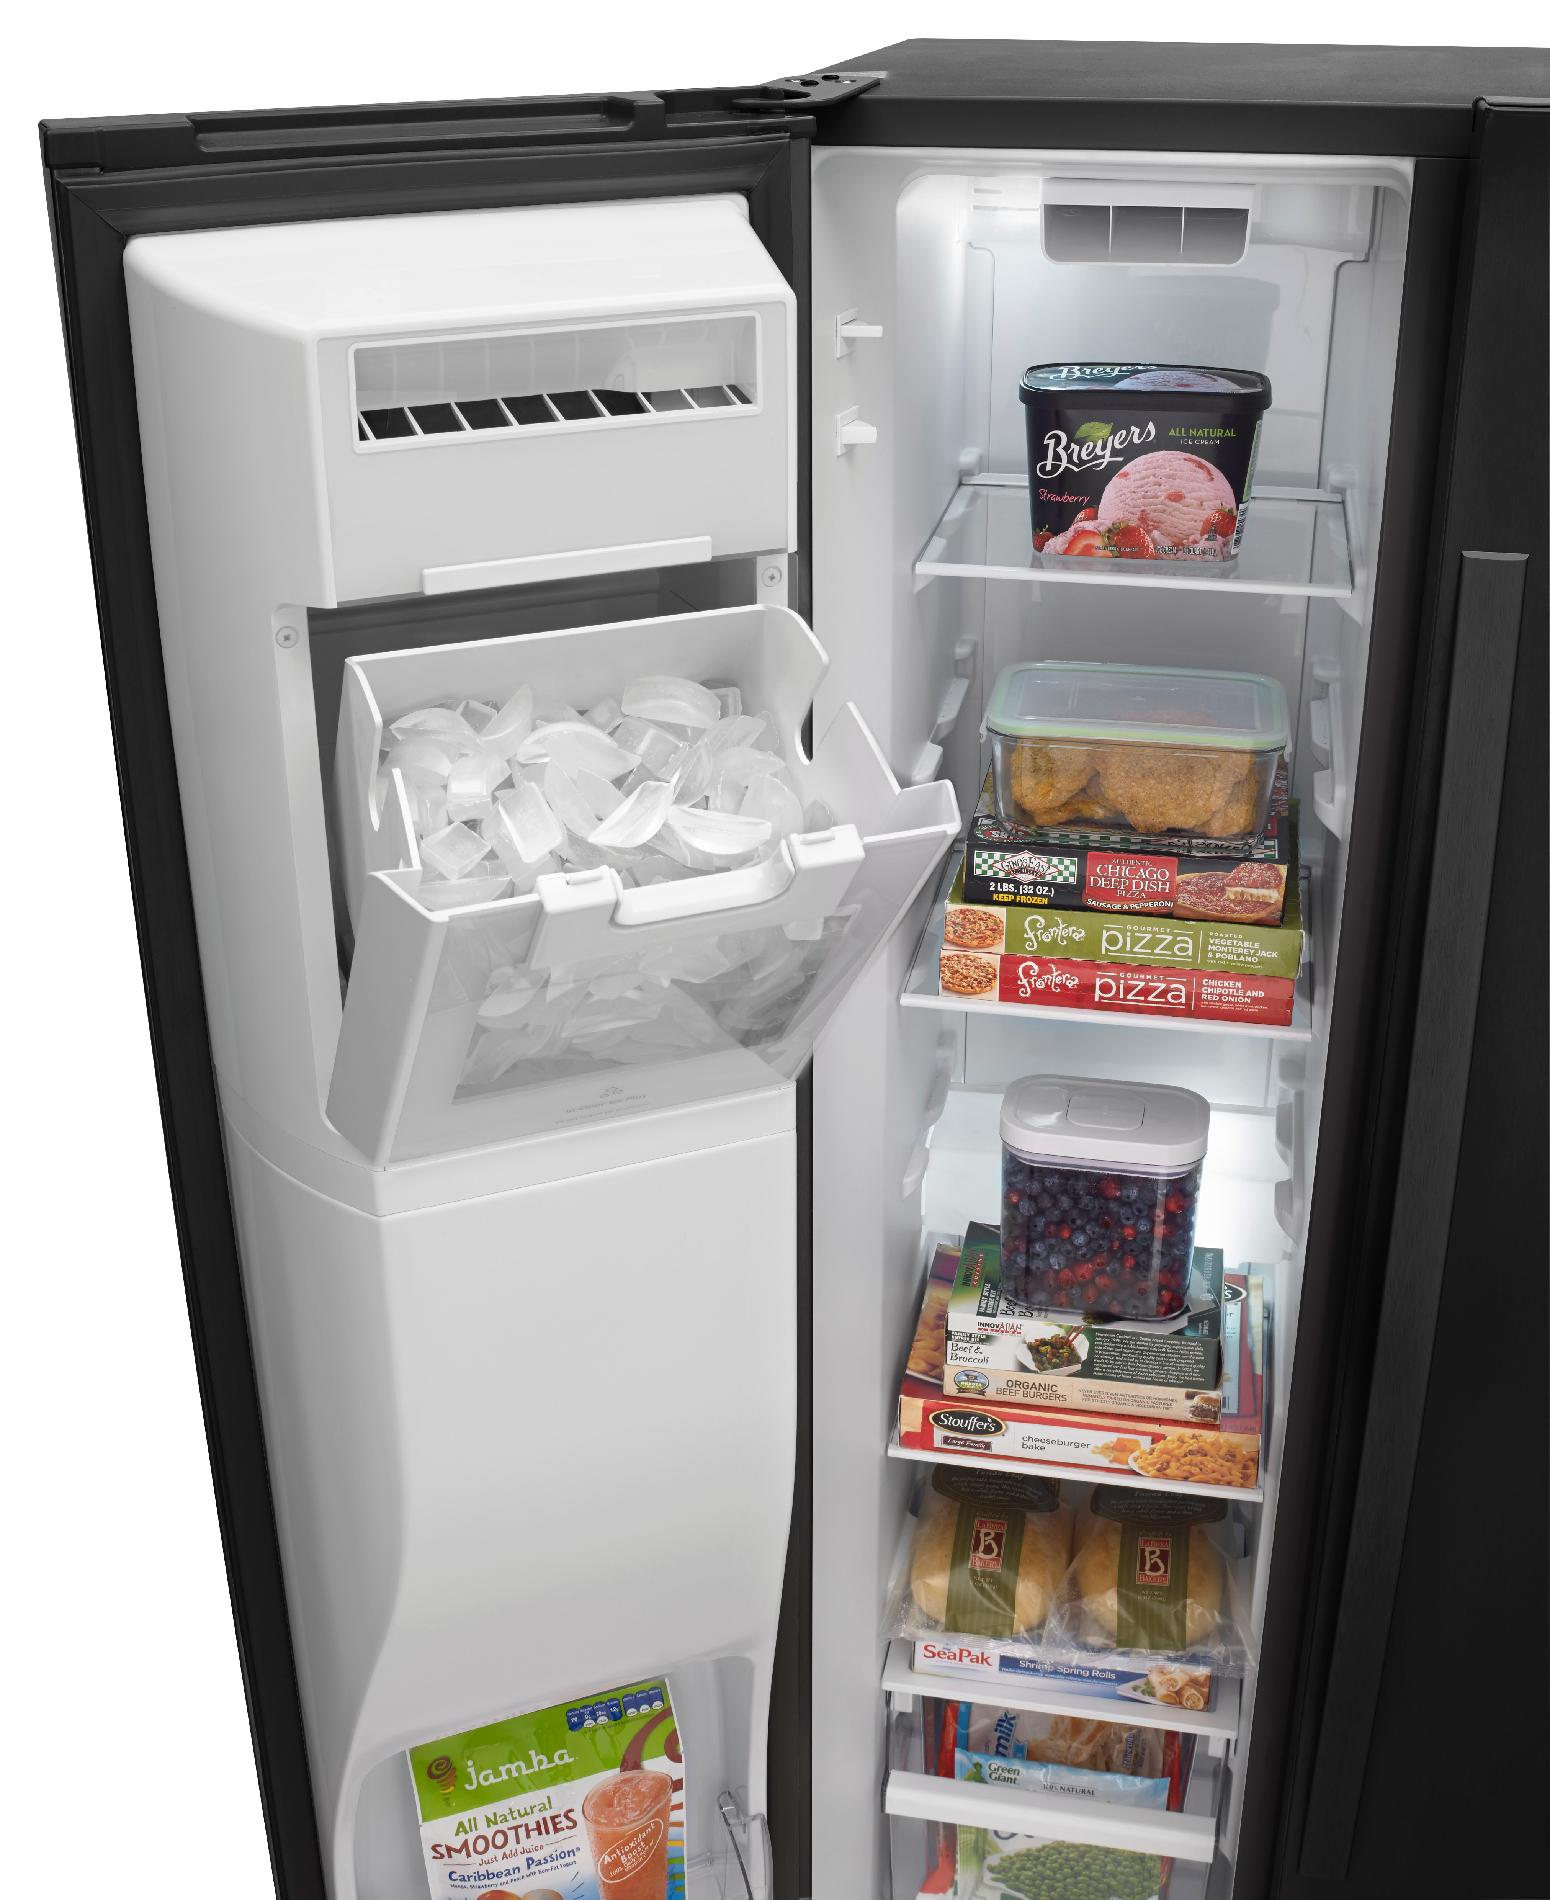 Whirlpool WRS576FIDB 26 cu. ft. Side-by-Side Refrigerator w/ Exterior Controls - Black